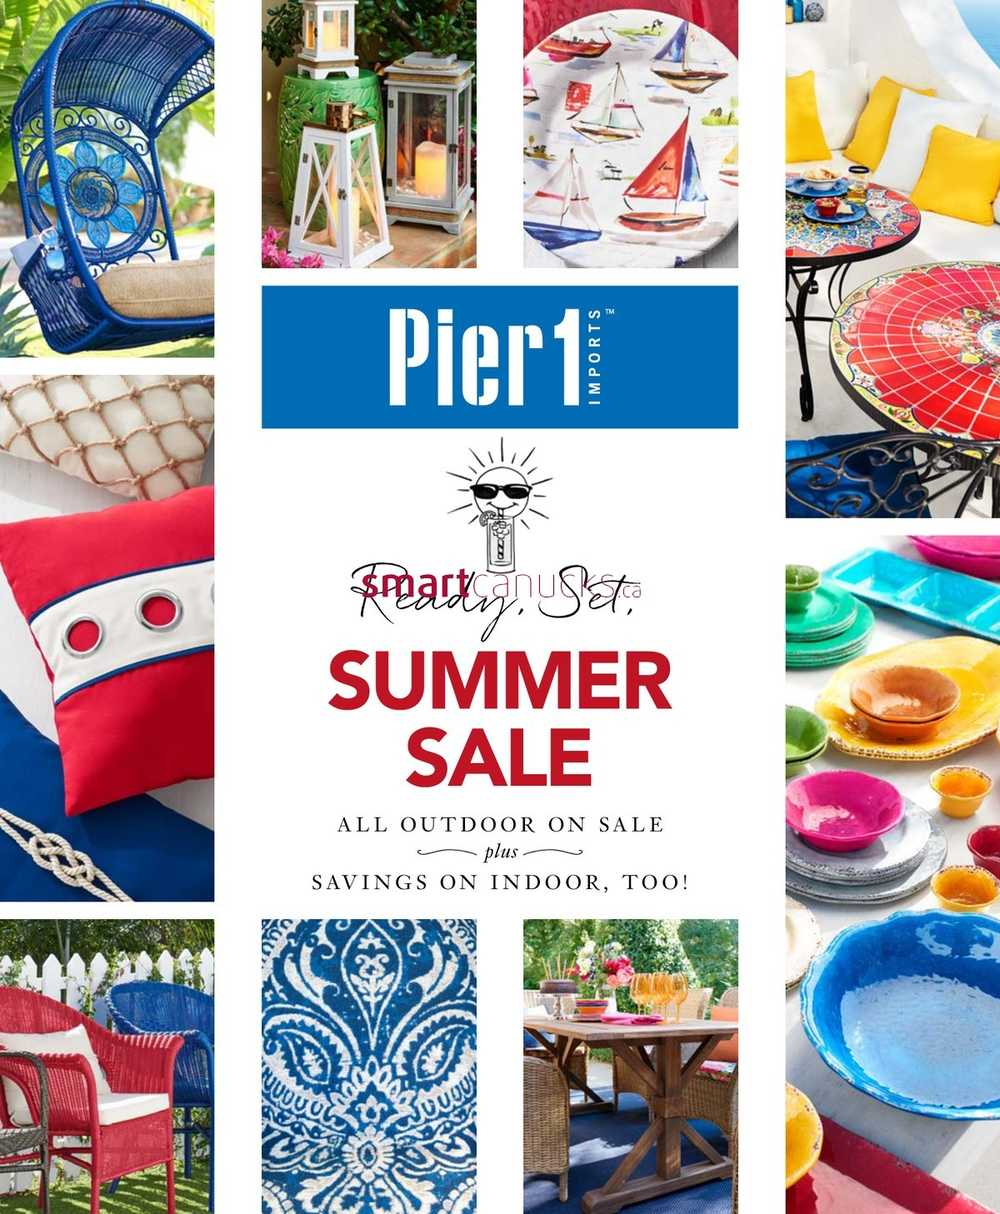 Pier 1 Imports Canada: Pier 1 Imports Canada Flyers